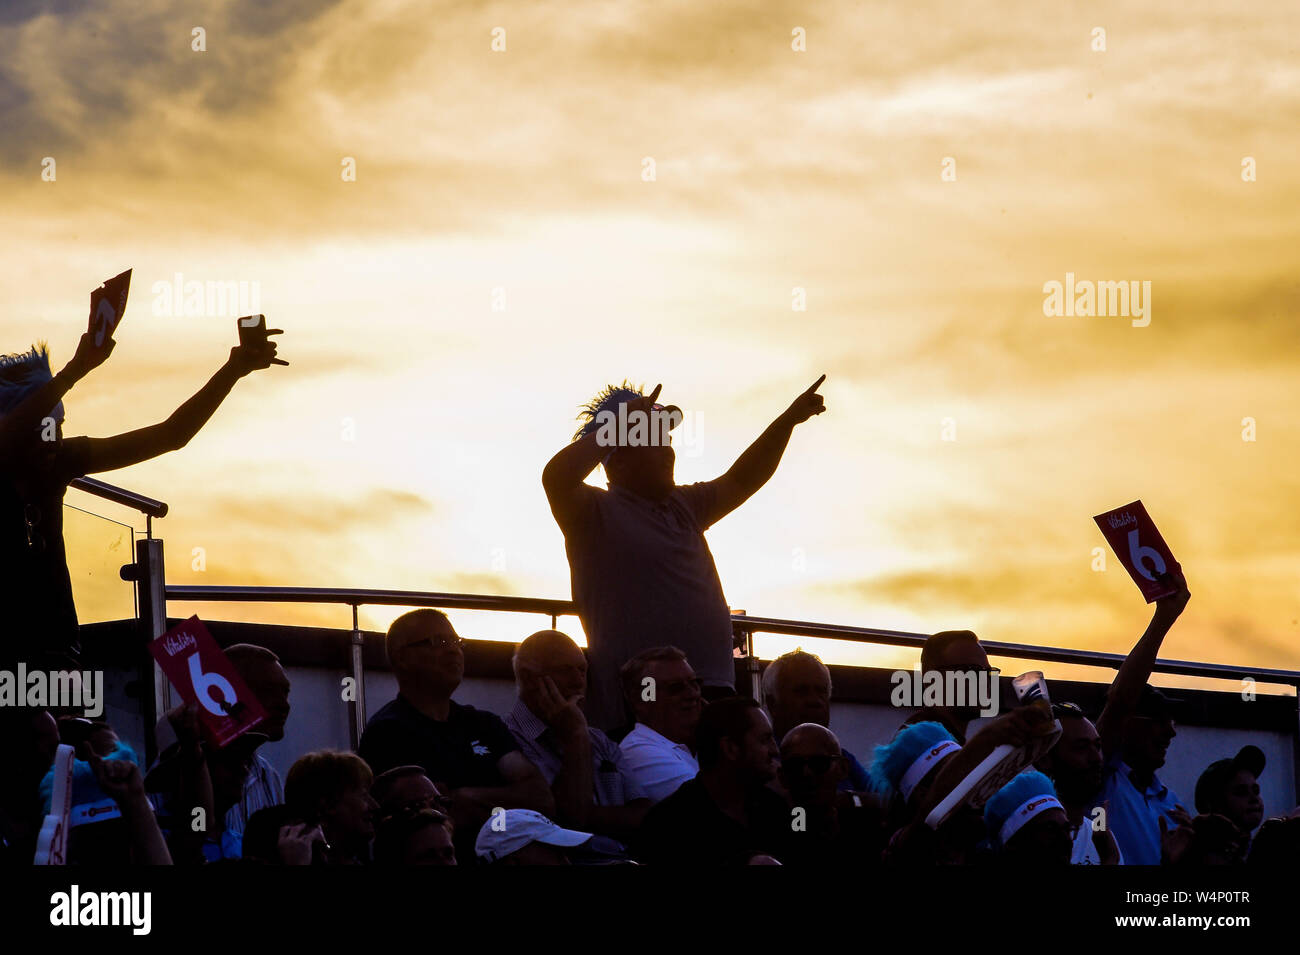 Hove Sussex UK 24th July 2019 - Fans enjoy the evening sunshine during the Vitality Blast South Group Match between Sussex Sharks and Hampshire at the 1st Central County Ground in Hove  . Credit : Simon Dack / Alamy Live News Stock Photo